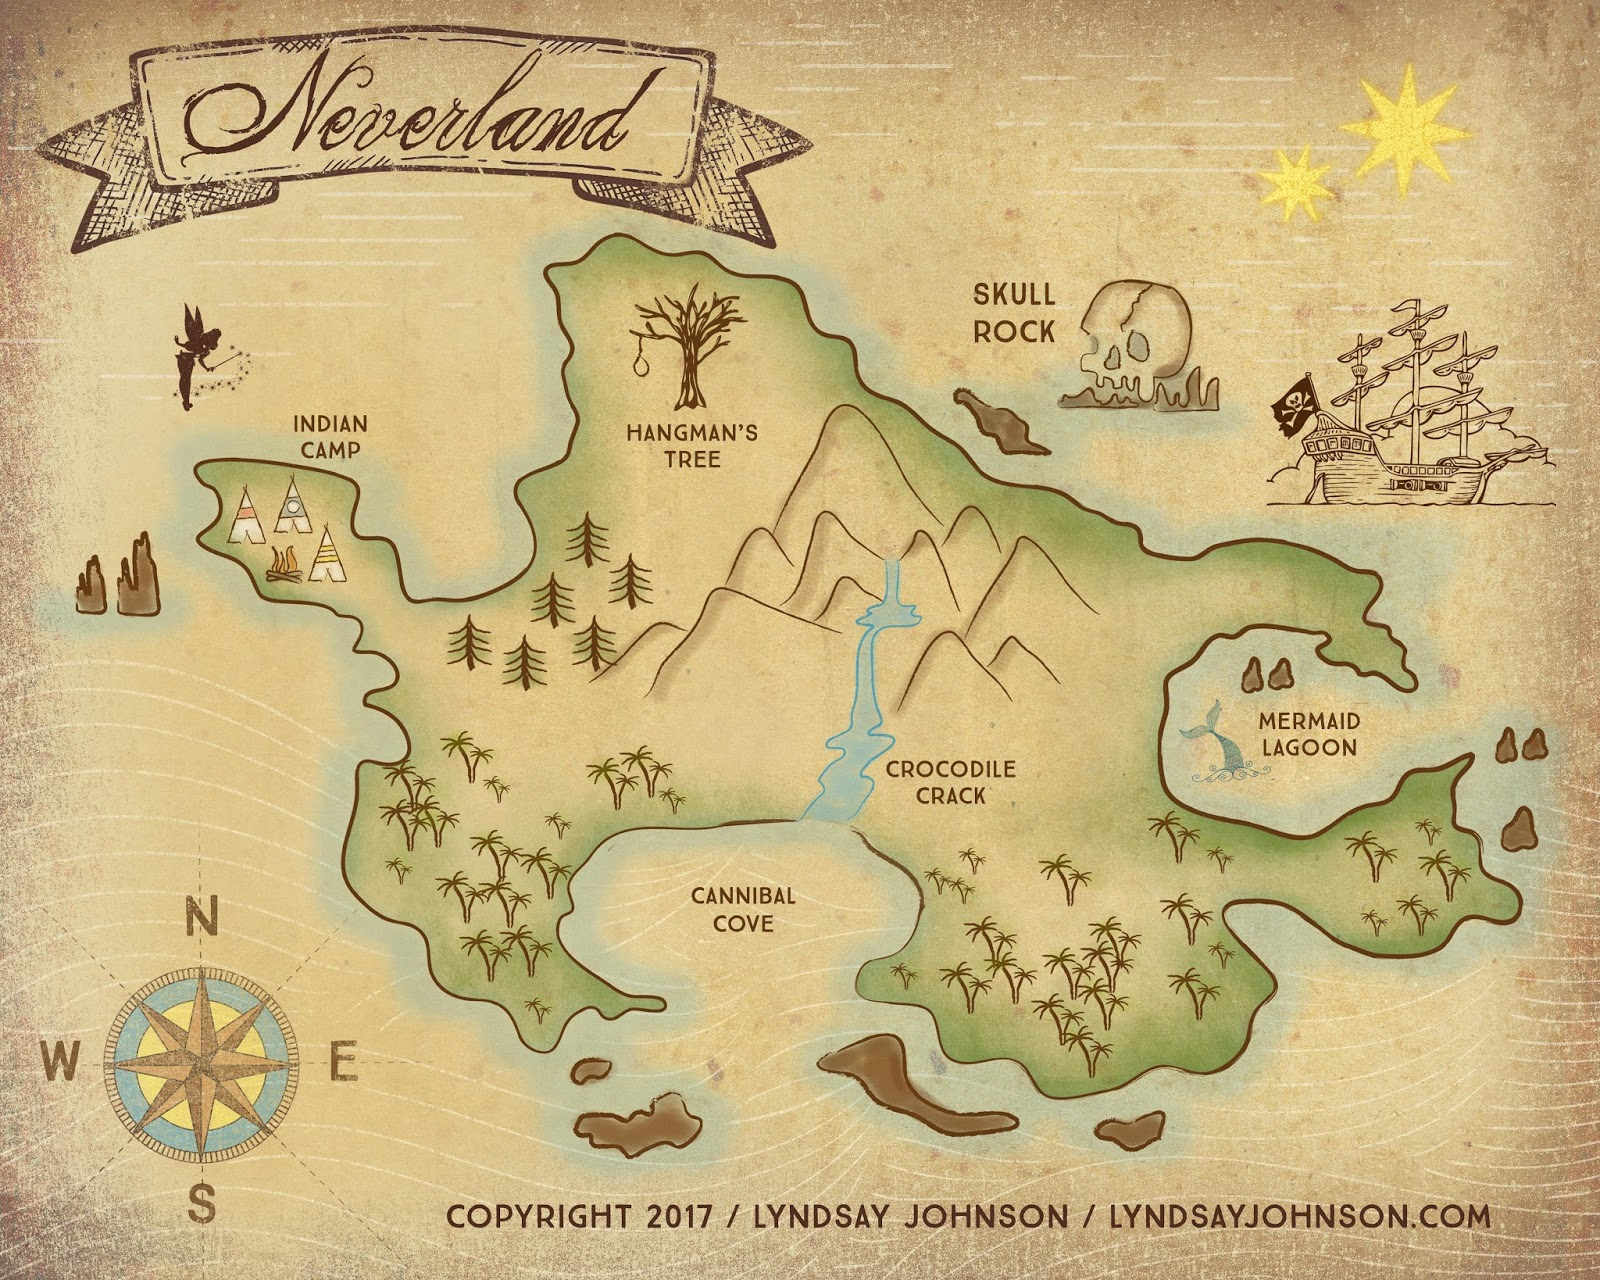 Neverland+Map+FINAL+16x20+posting+copy